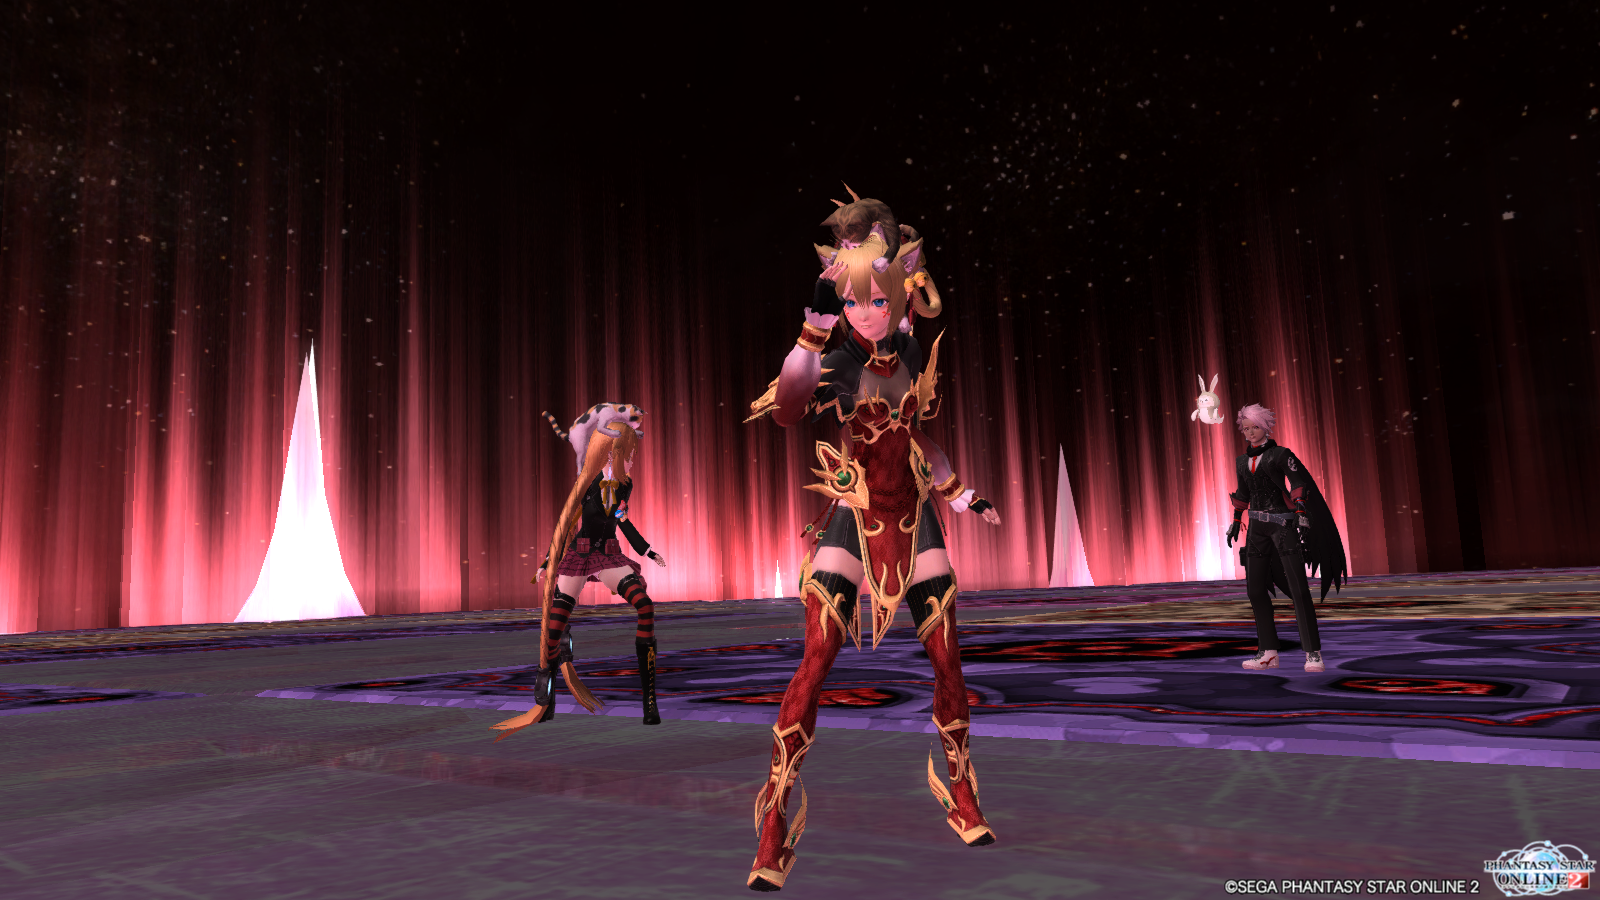 pso20151111_230624_018.png